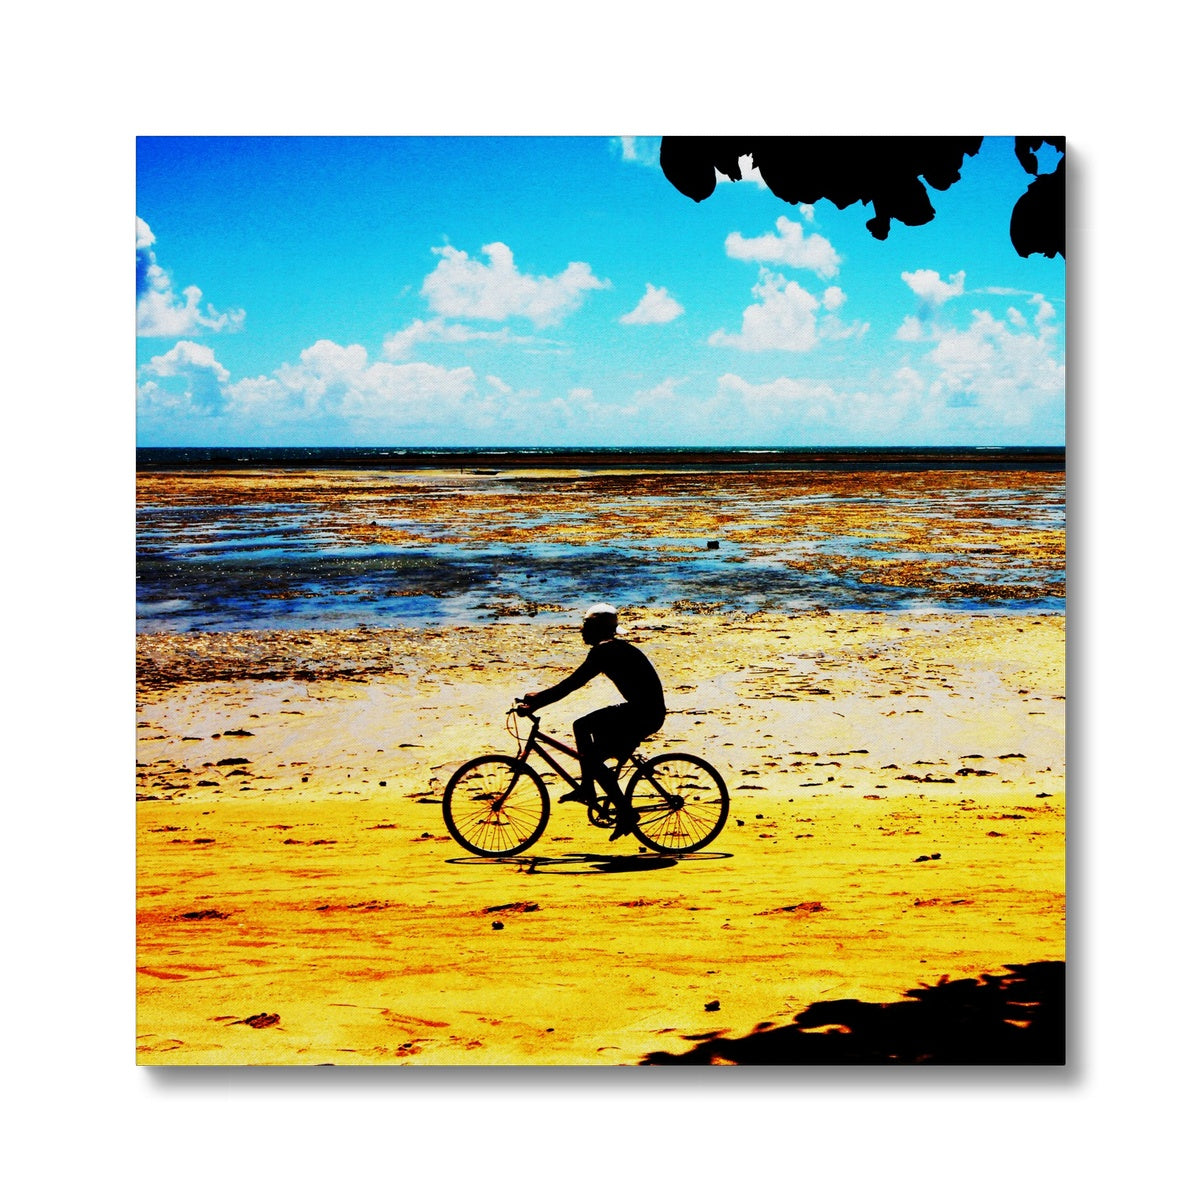 Bahia Bicycle - Square Canvas